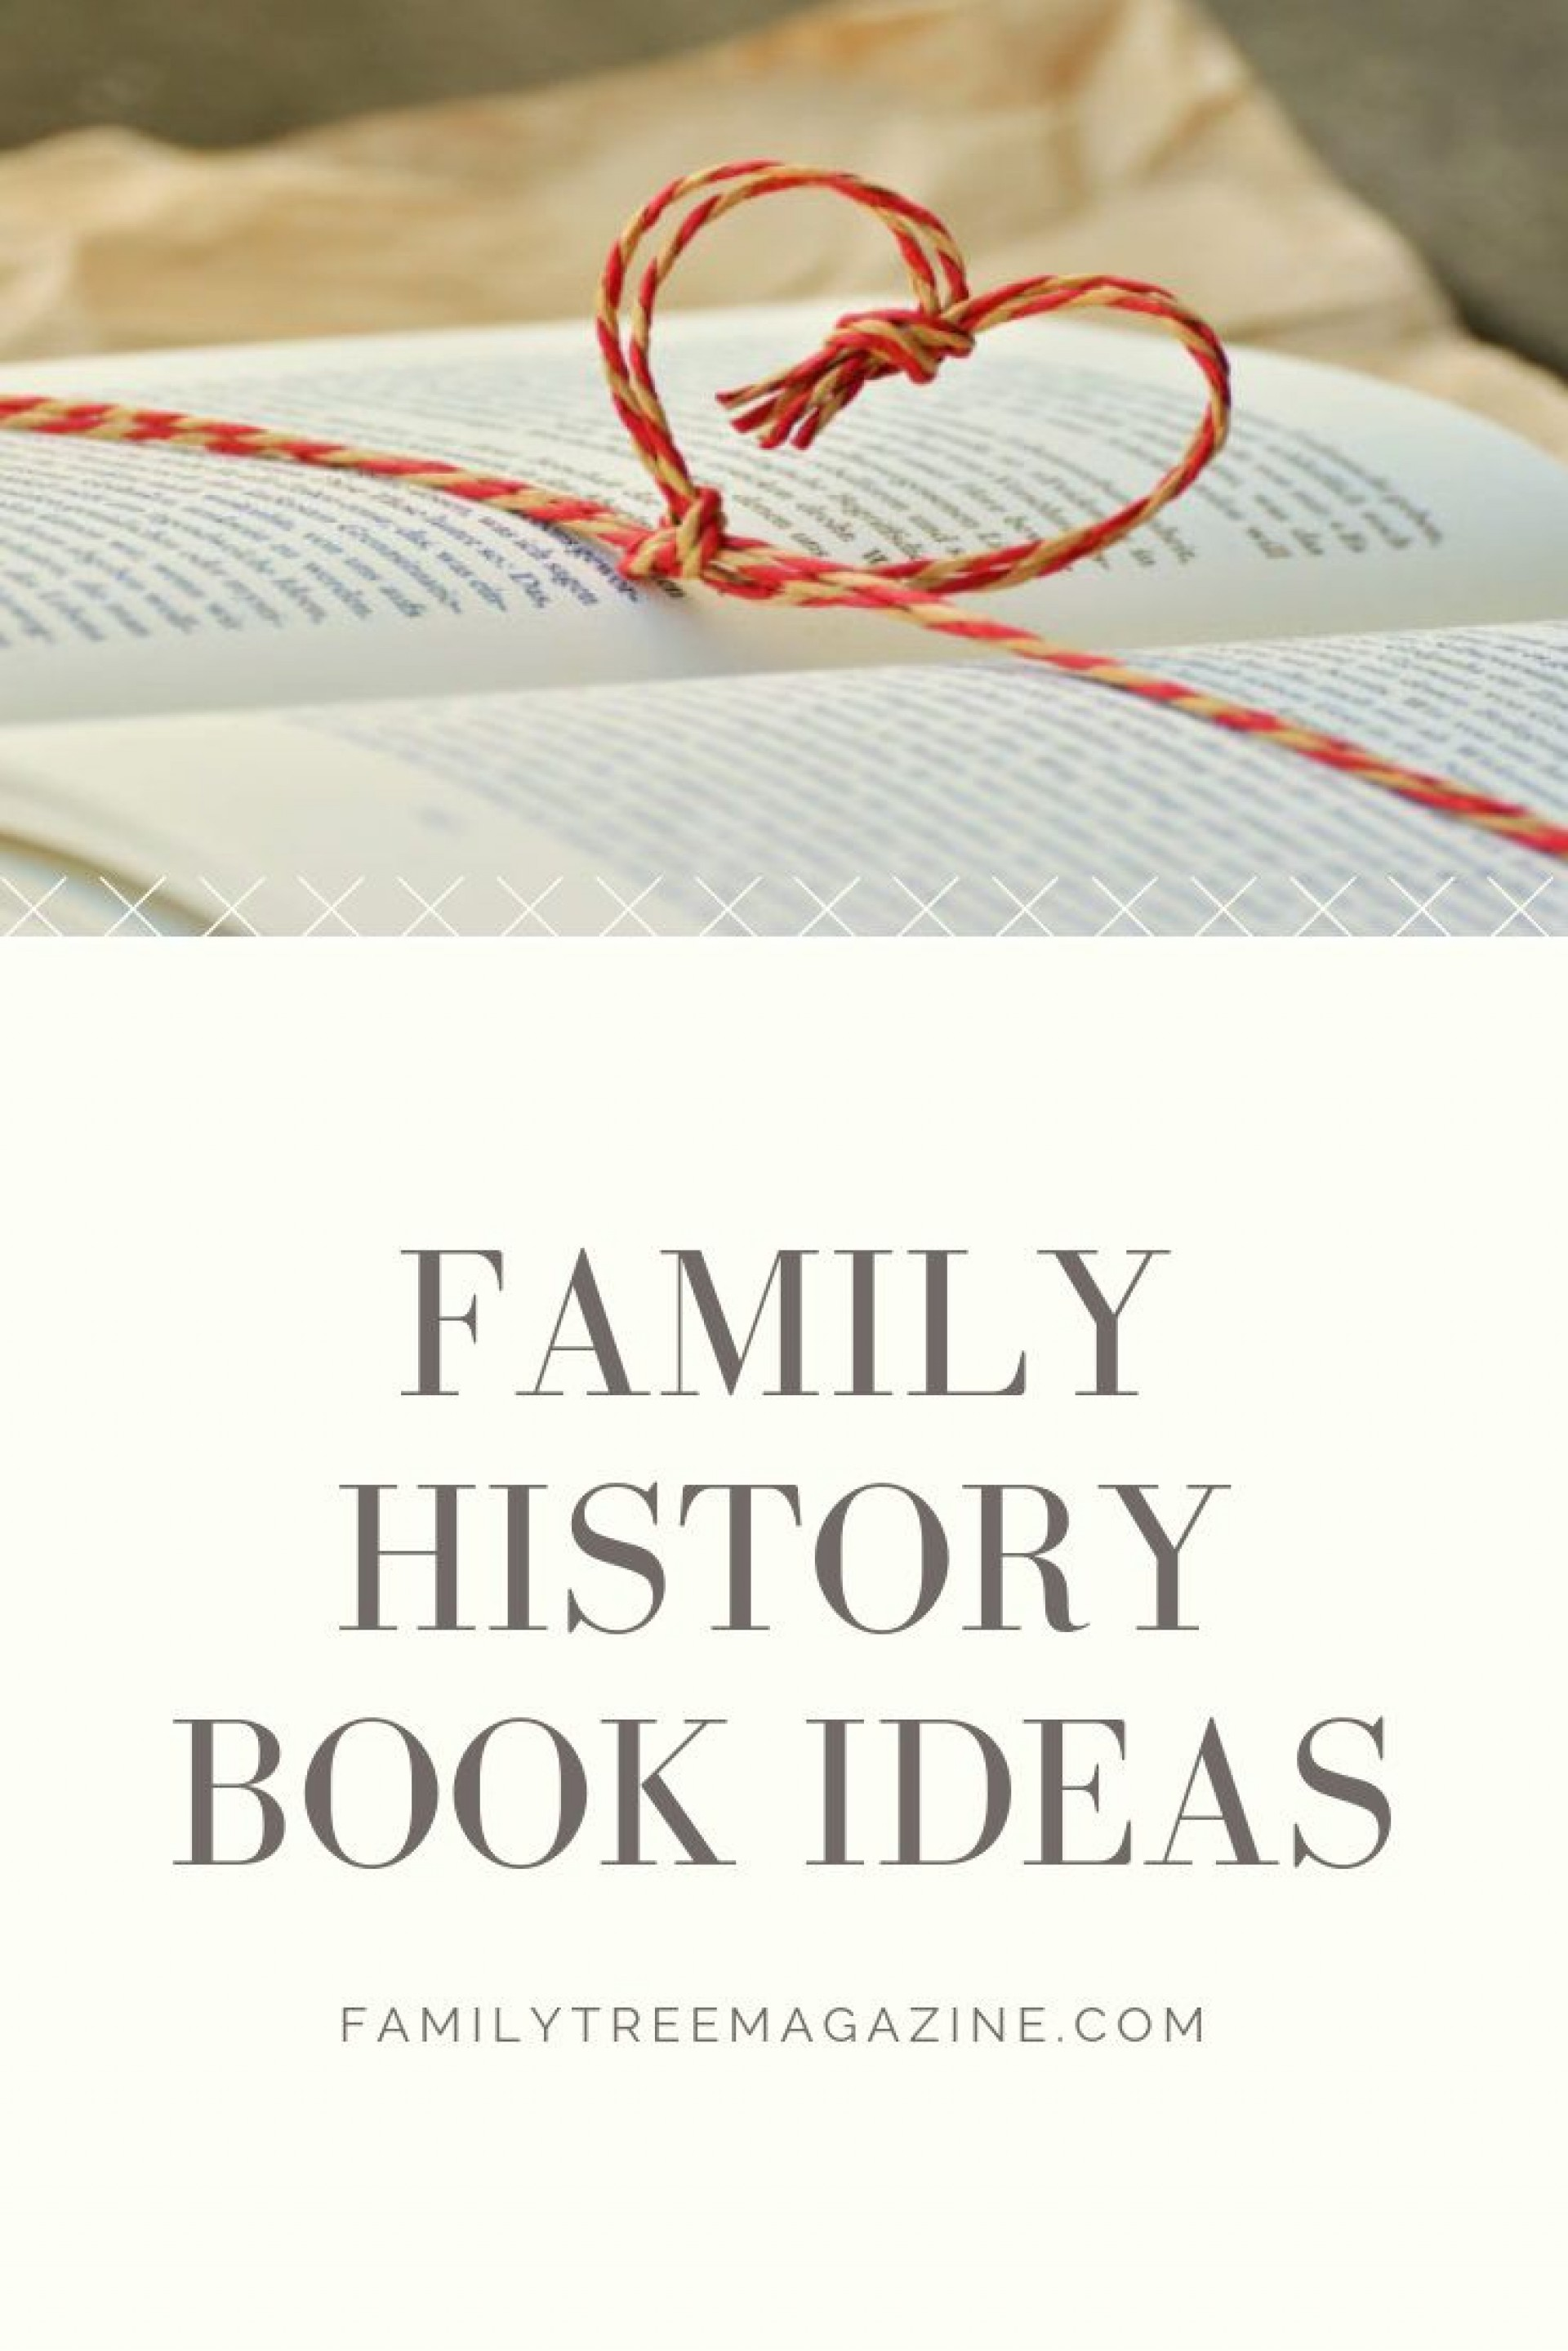 009 Rare Family Tree Book Template High Definition  Photo Free1920